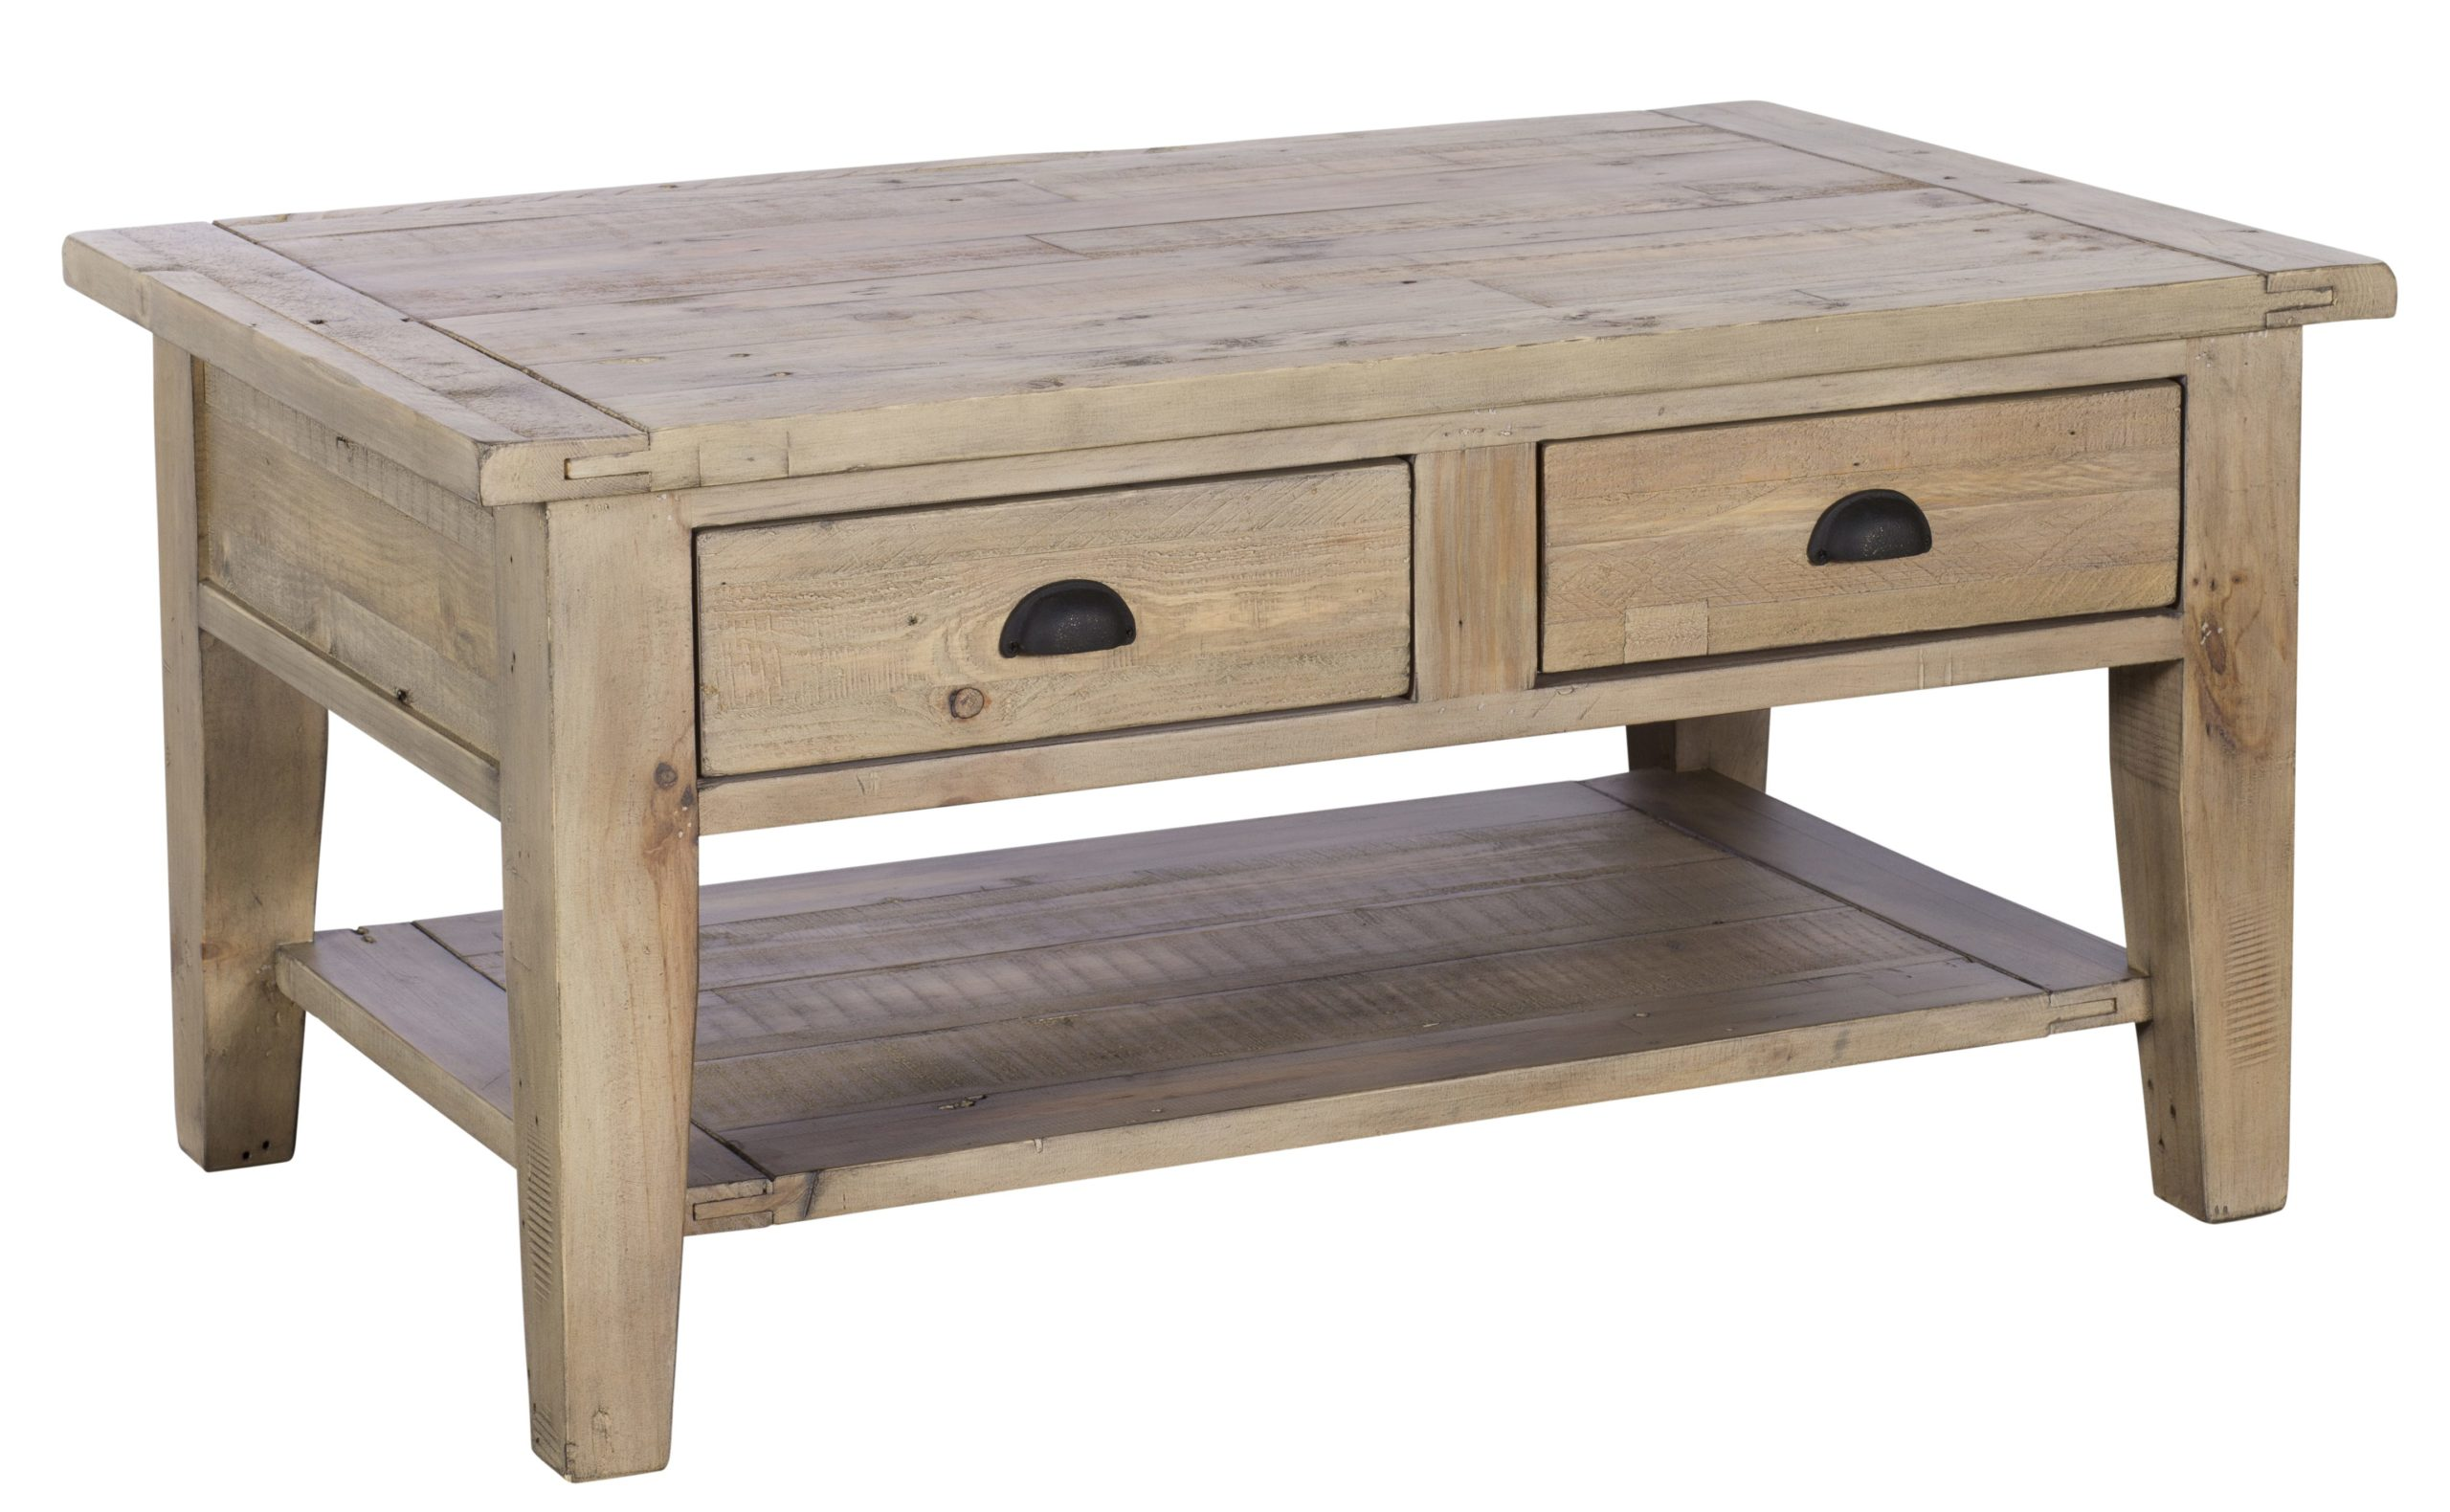 Verona Coffee Table VT15 1 e1573077702316 scaled